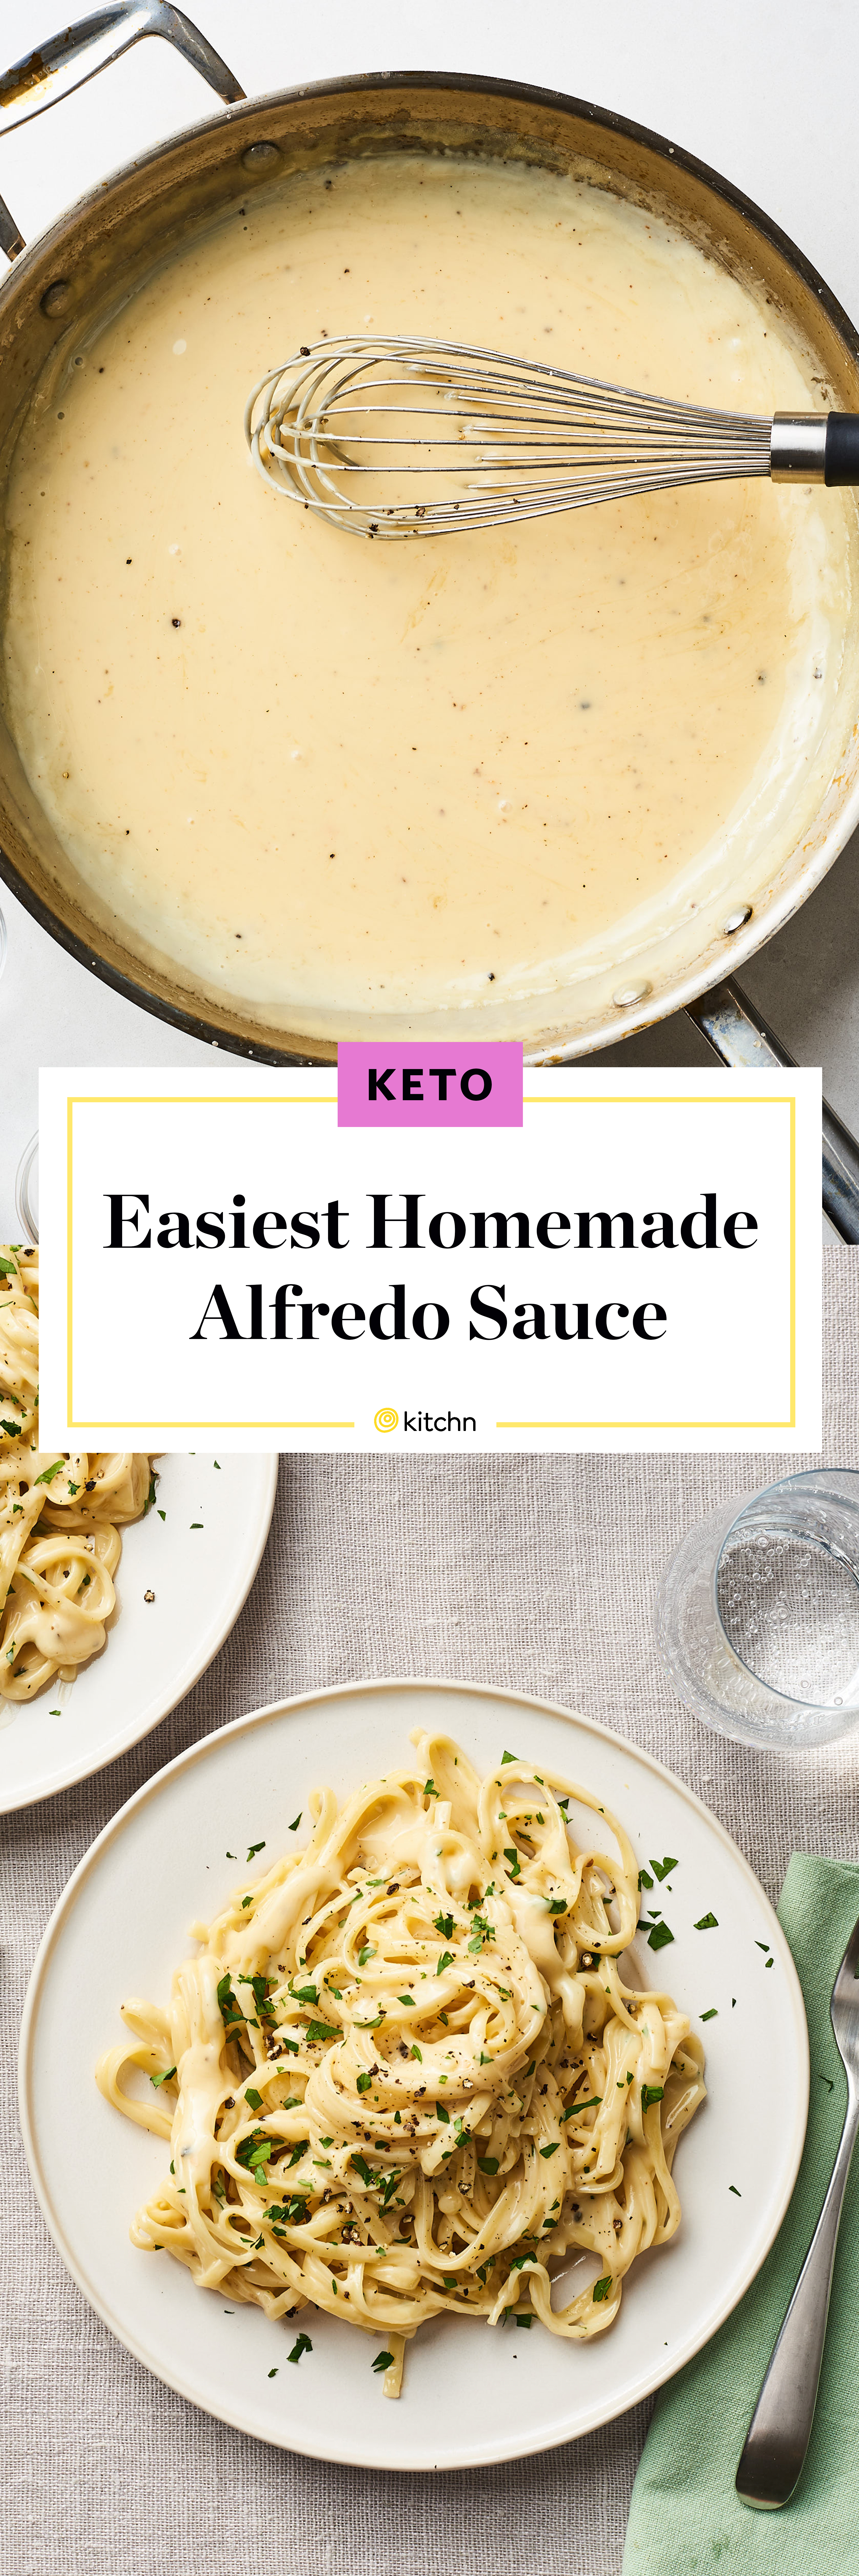 The Best Homemade Alfredo Sauce Kitchn